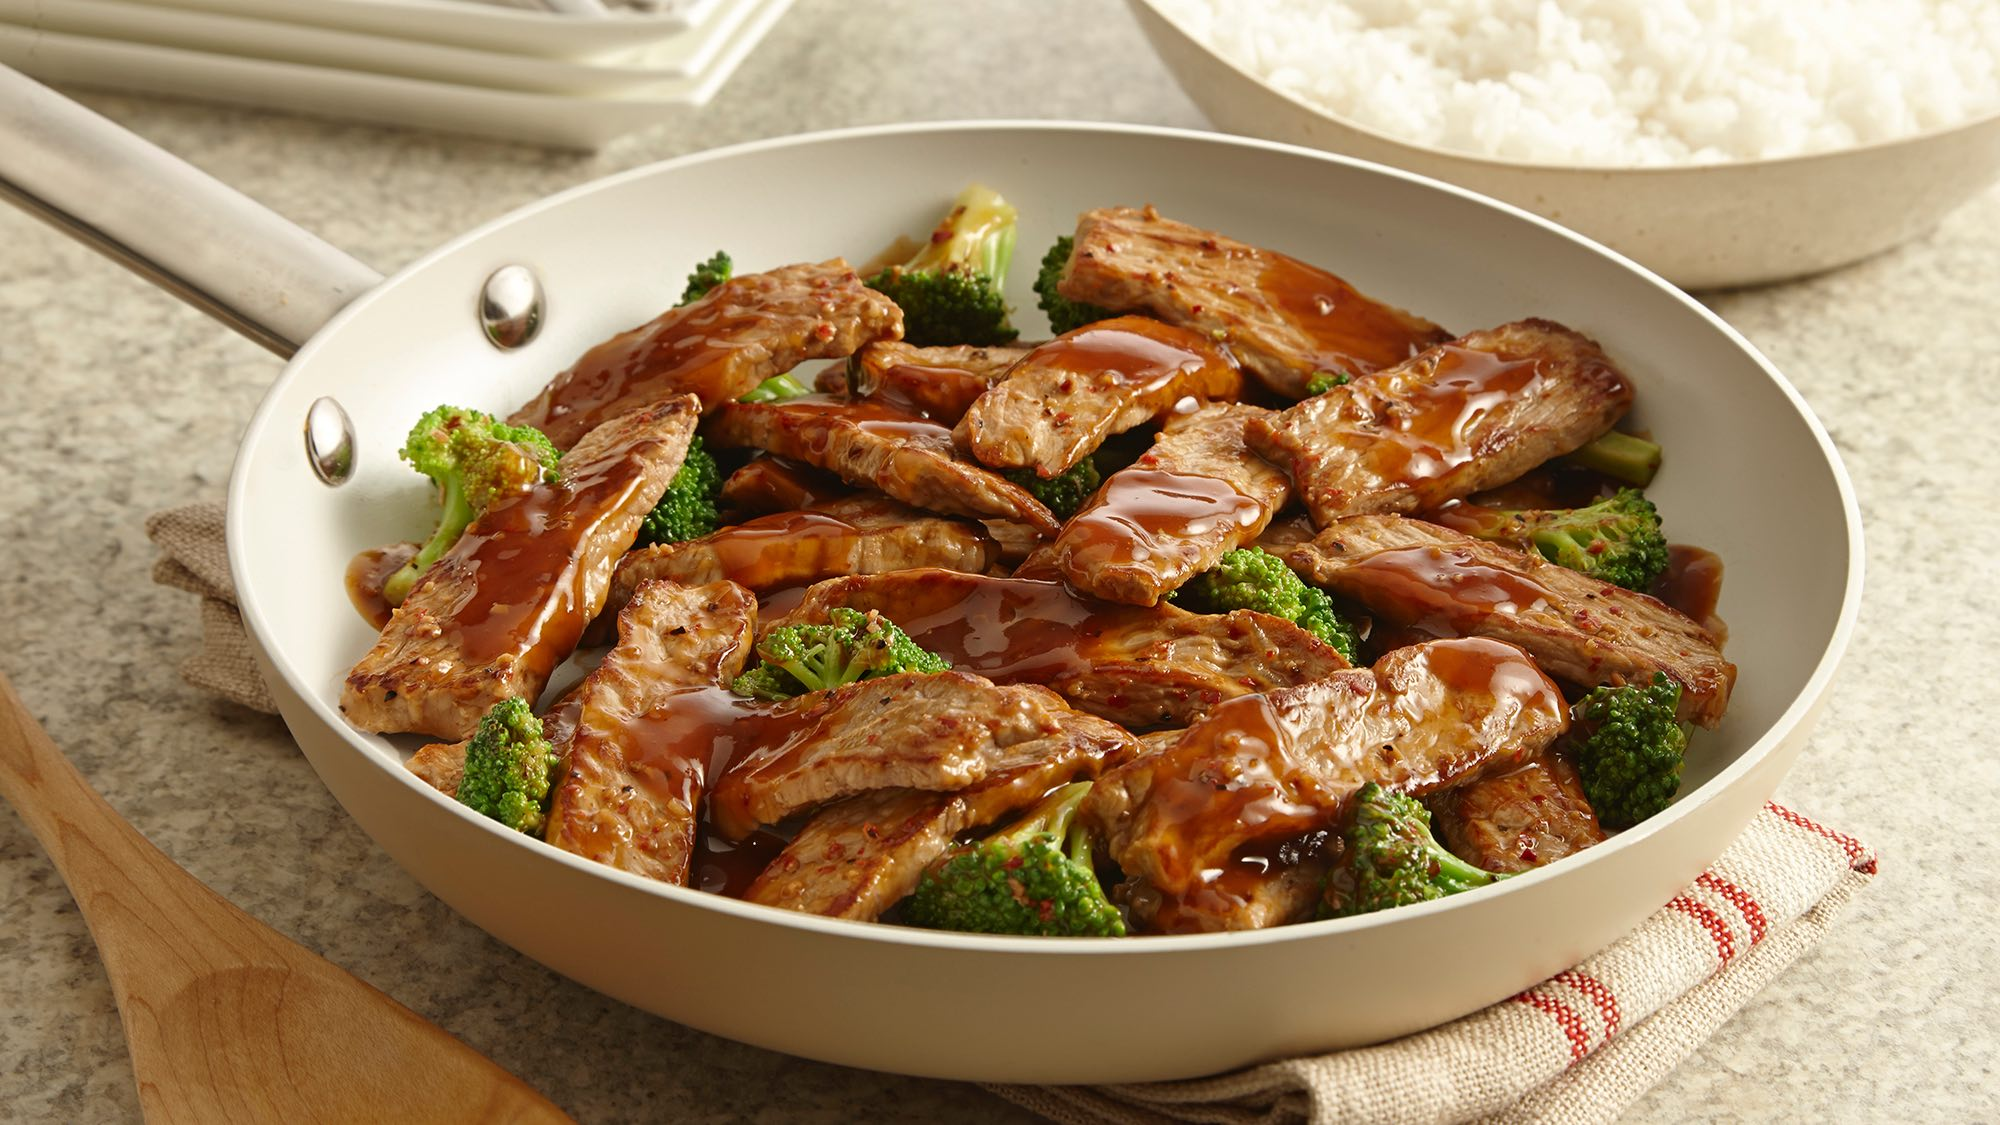 beef-and-broccoli-stir-fry.jpg